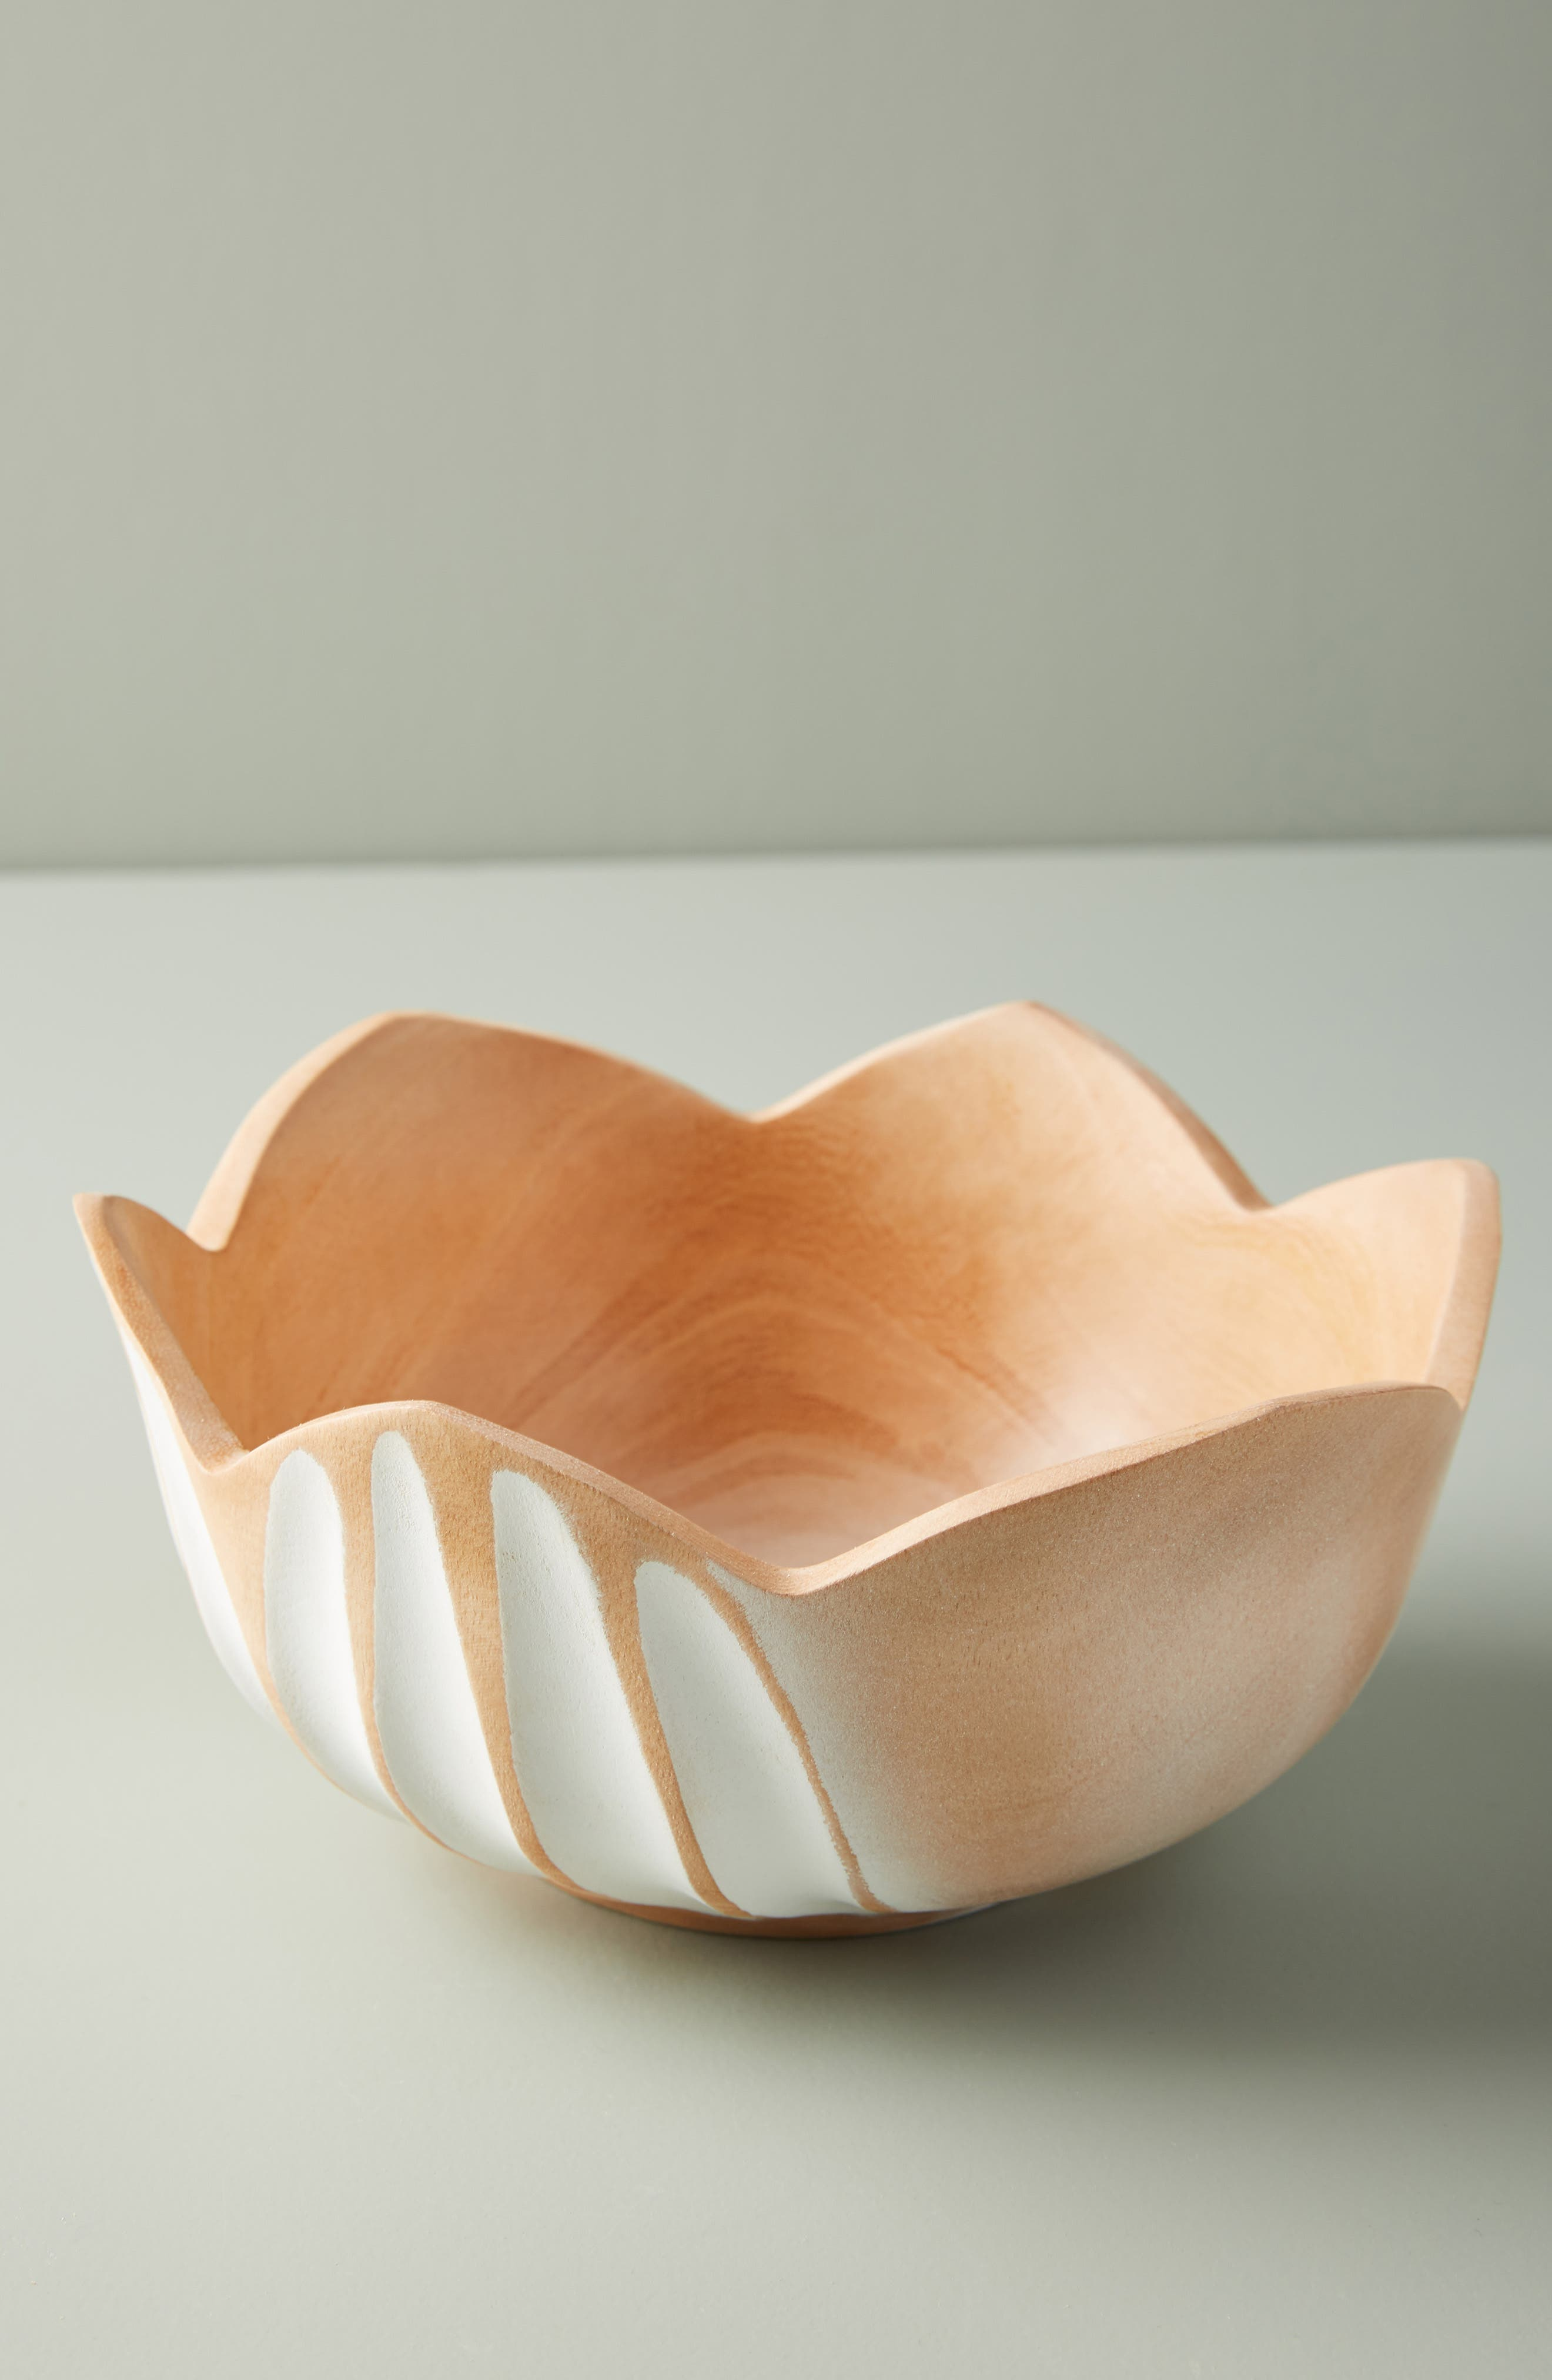 ANTHROPOLOGIE, Lotus Mango Wood Bowl, Main thumbnail 1, color, WHITE